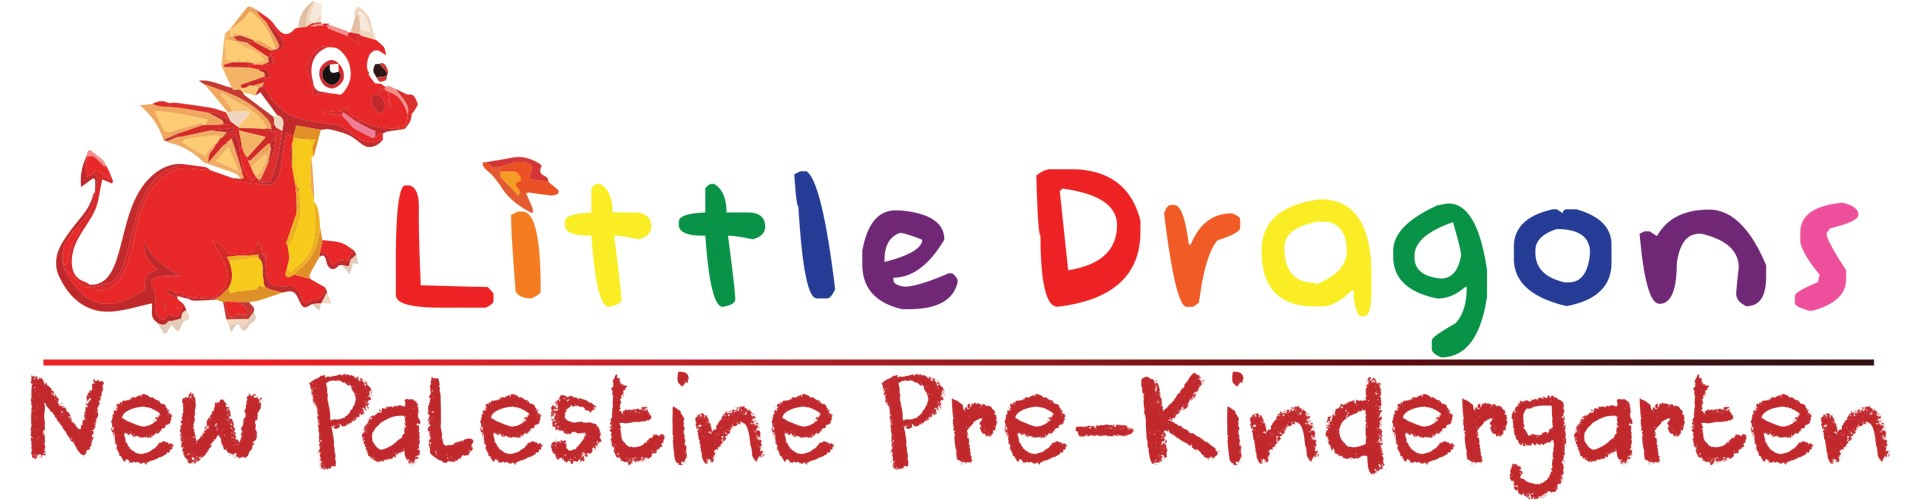 Welcome to Little Dragons Pre-K!